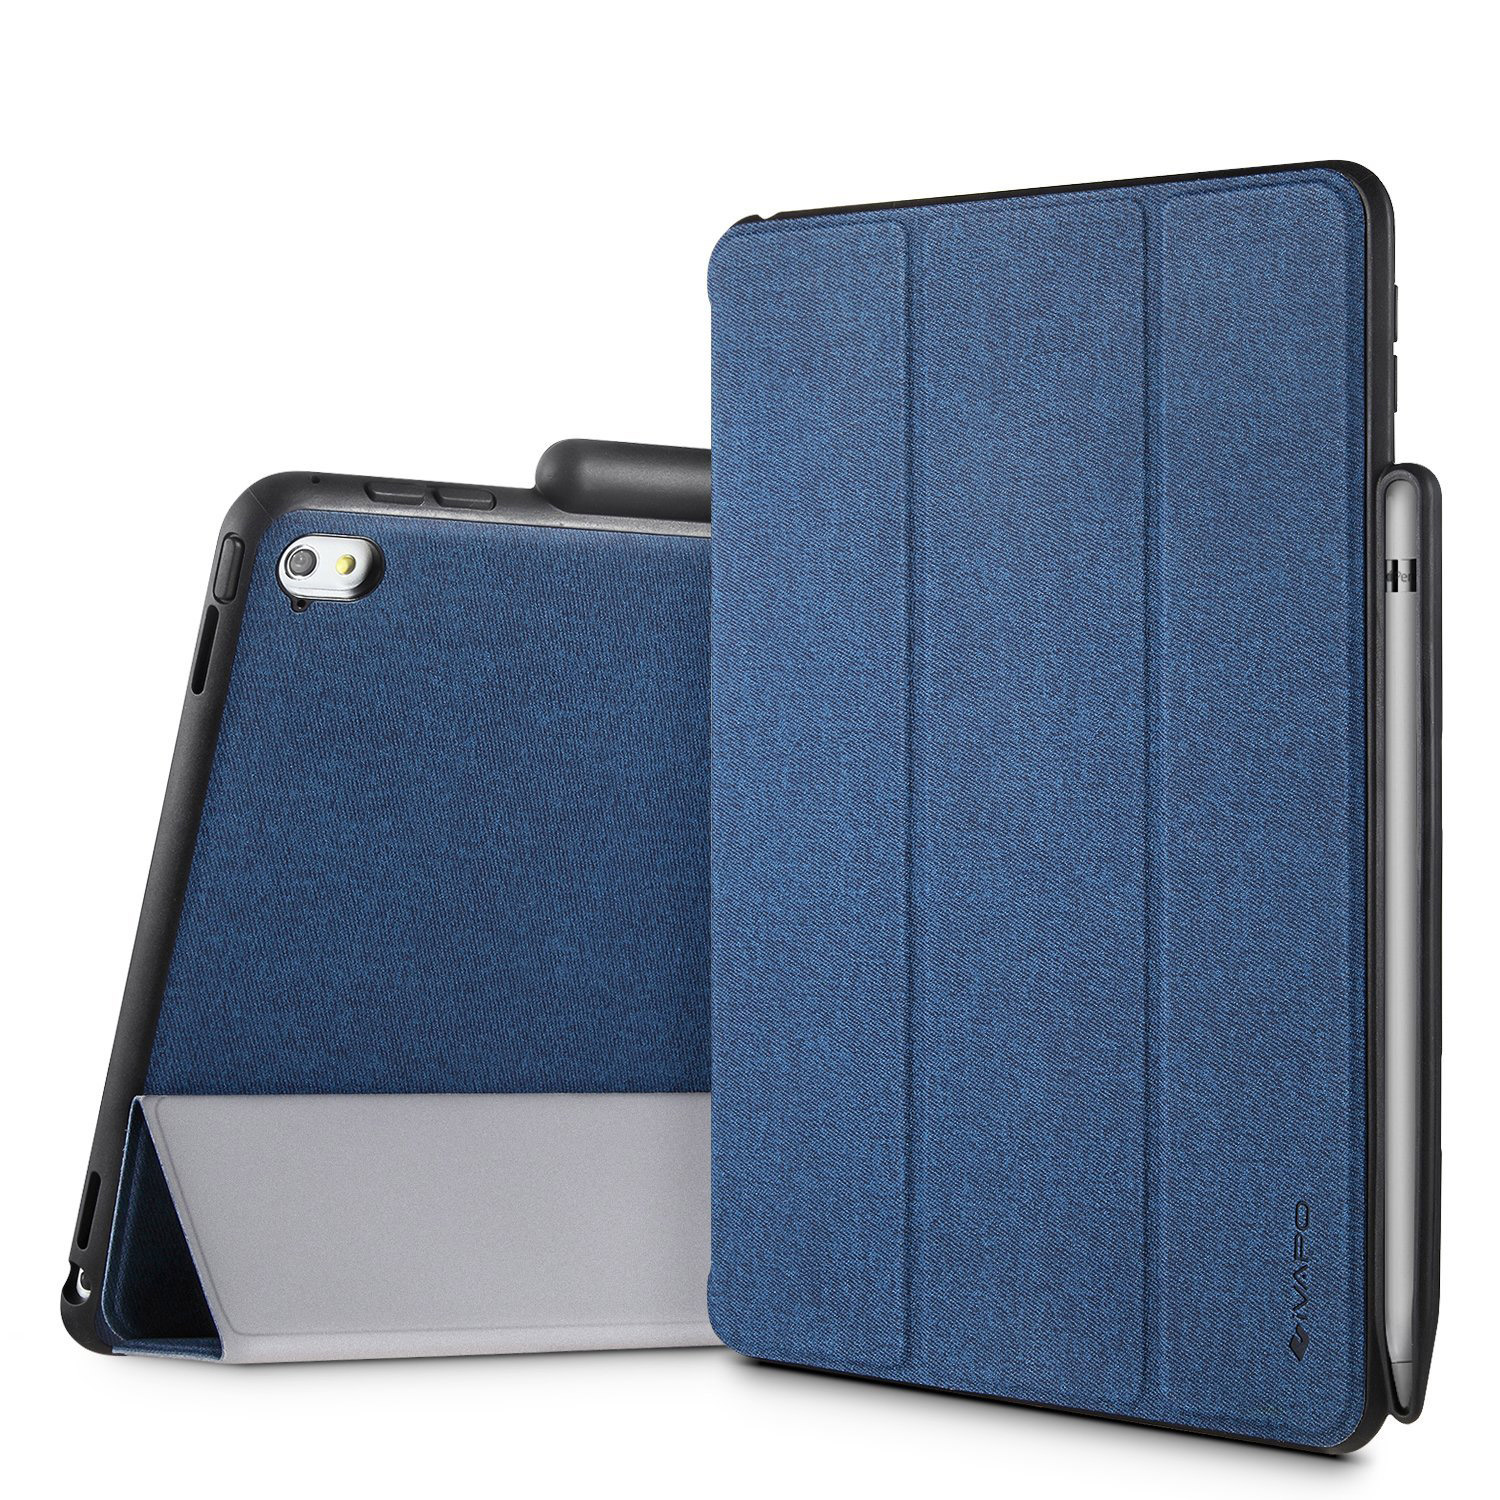 sports shoes 85604 c9f4f iVAPO 9.7-inch iPad Pro Case with Pencil Holder